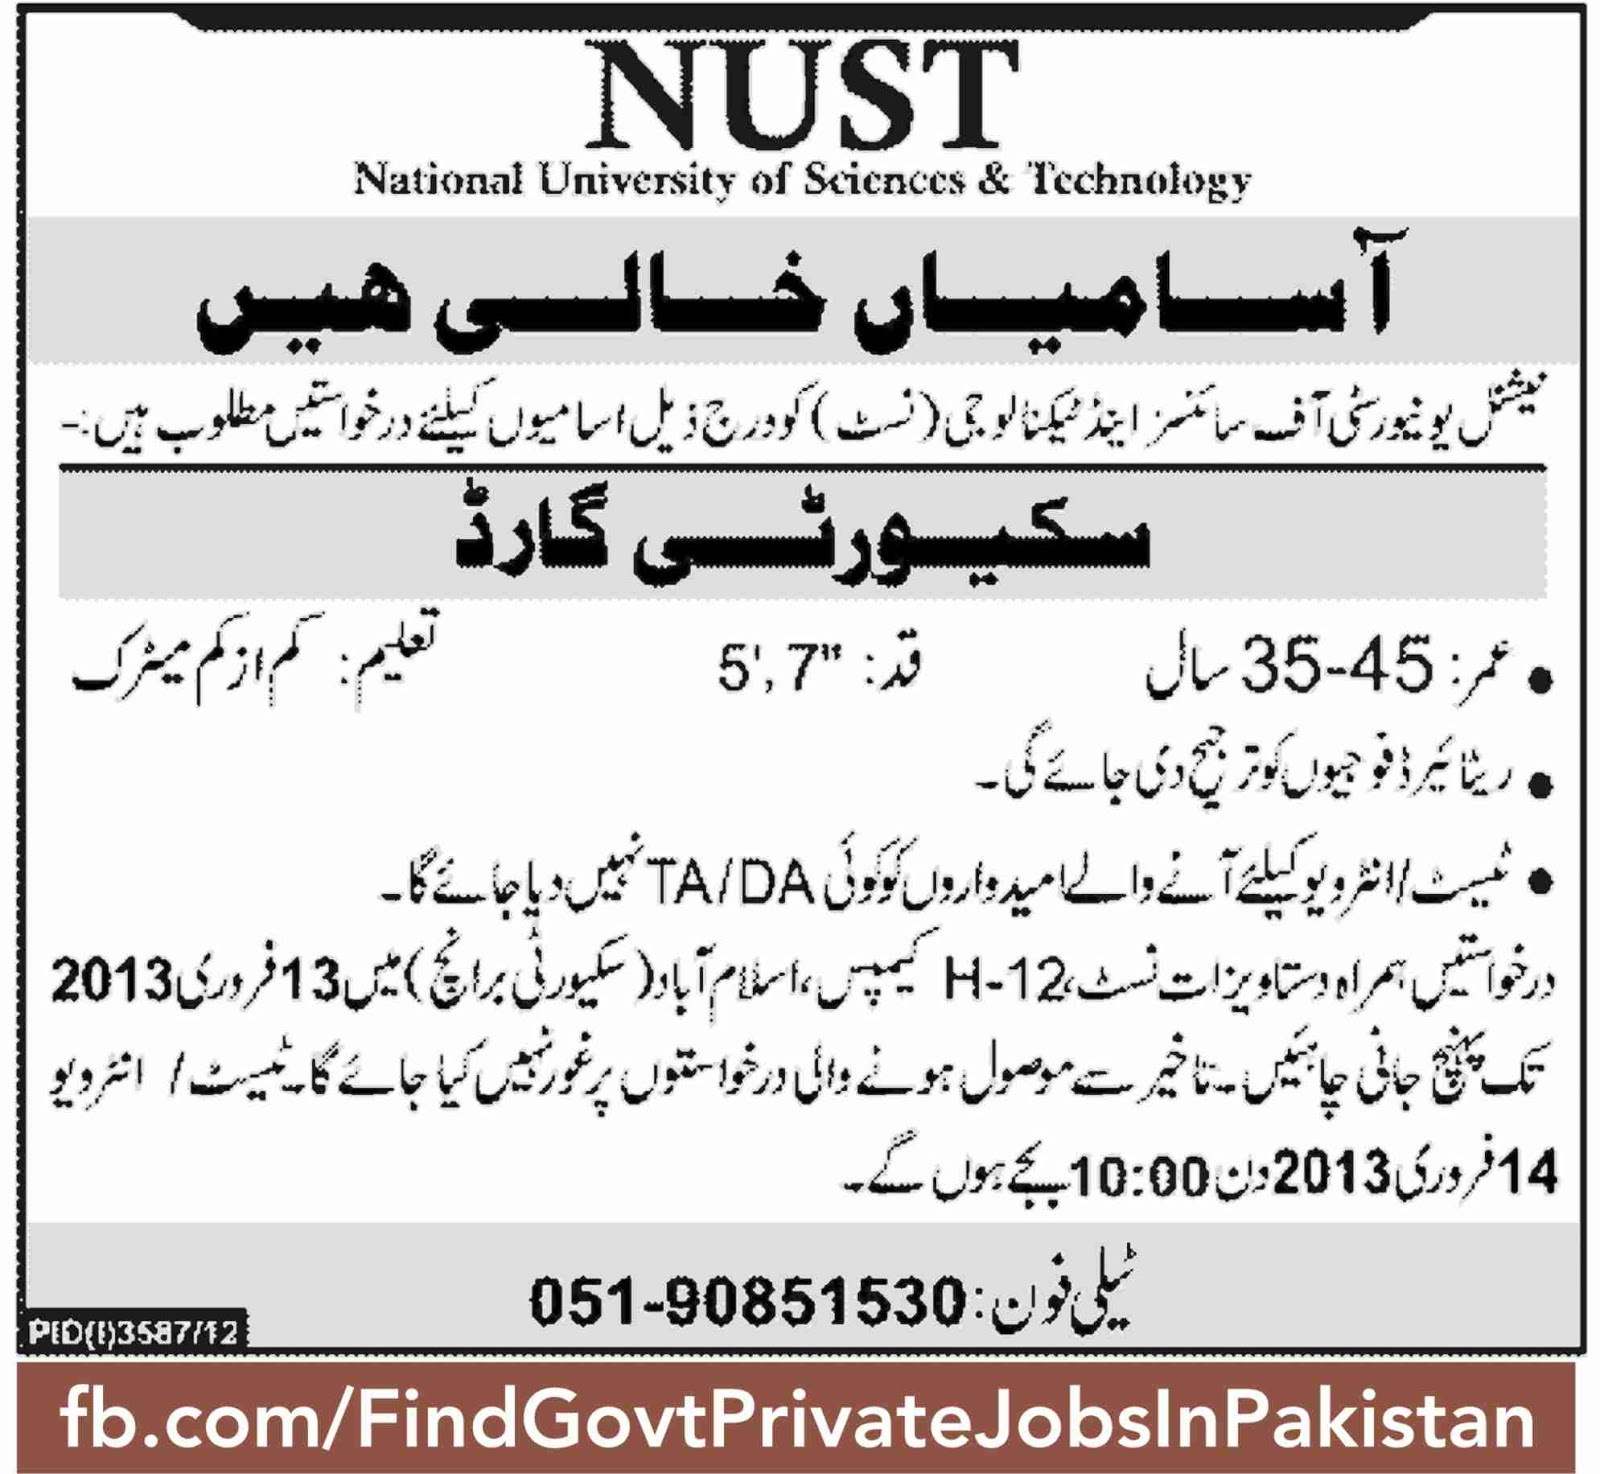 nust requried security guard